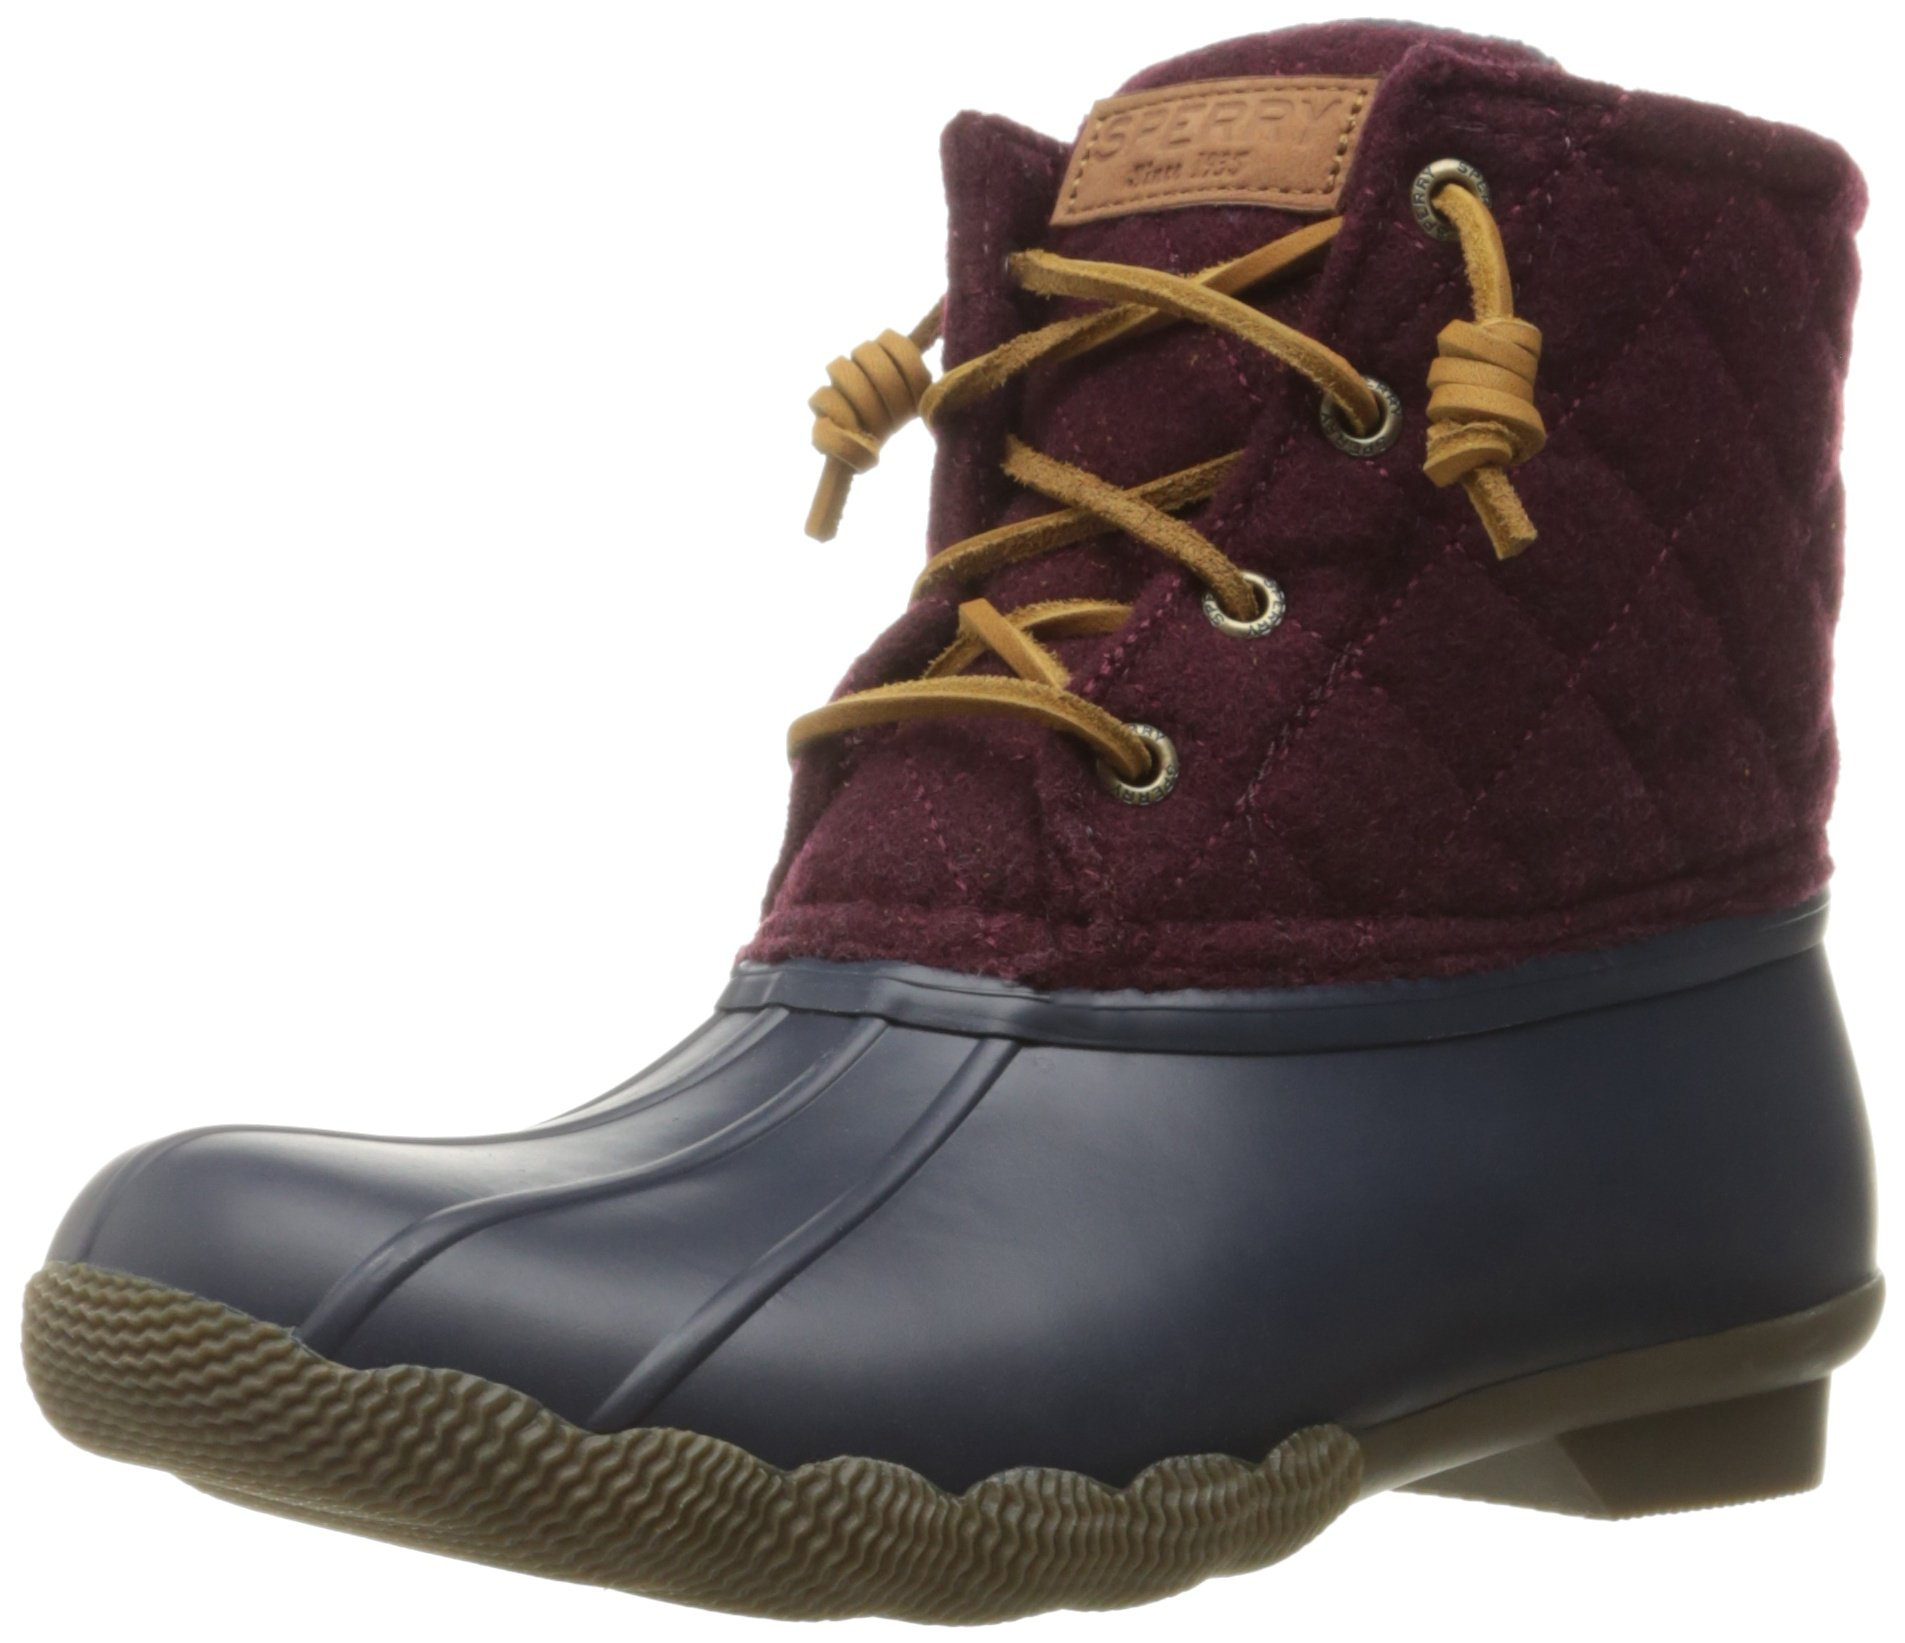 Sperry Top-Sider Women's Saltwaterquilted Wool Rain Boot, Navy/Maroon, 8 M US by Sperry